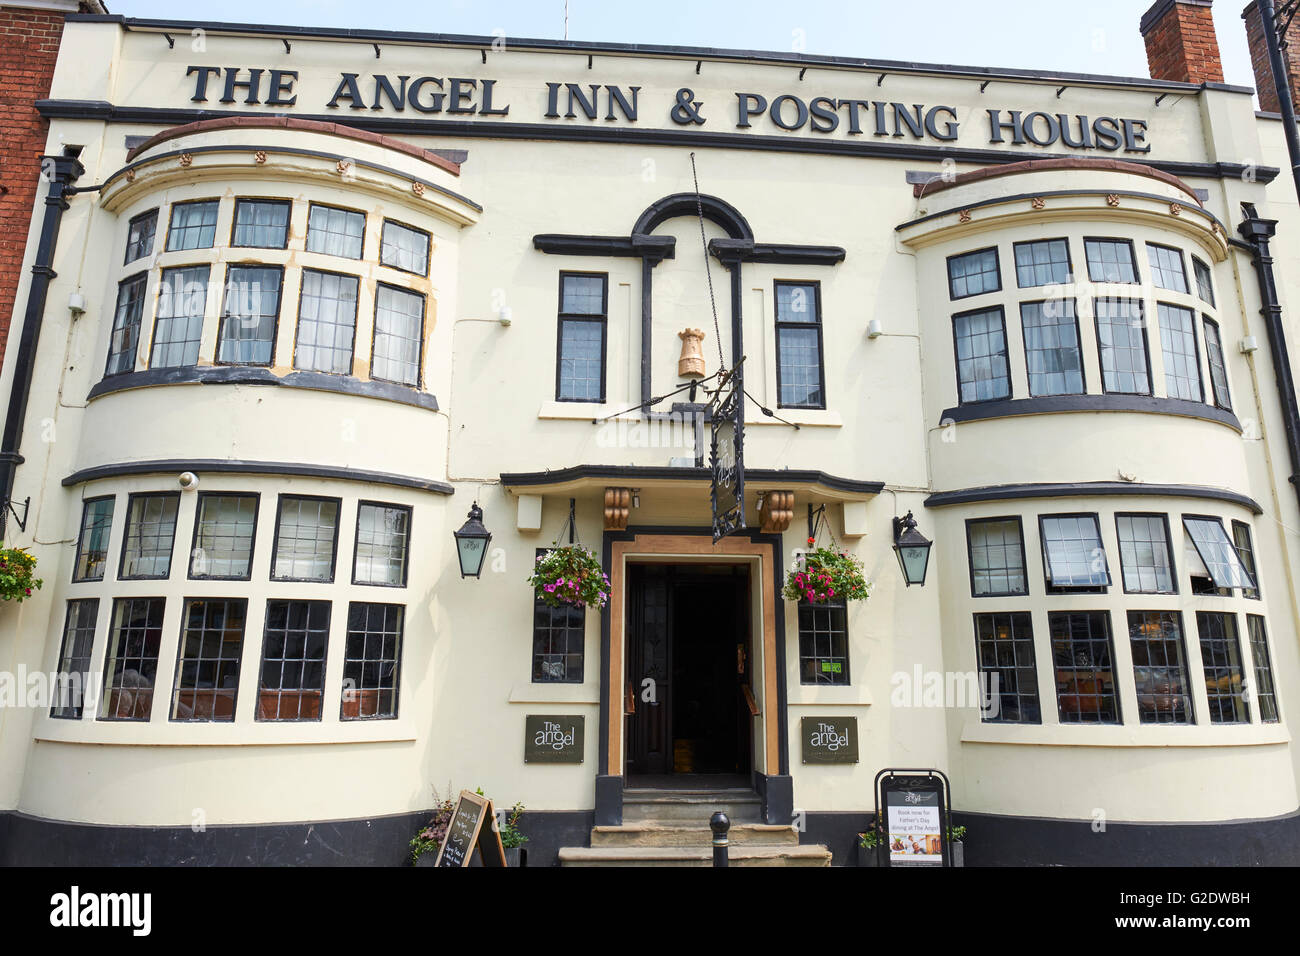 The Angel Inn And Posting House High Street Pershore Wychavon Worcestershire UK - Stock Image